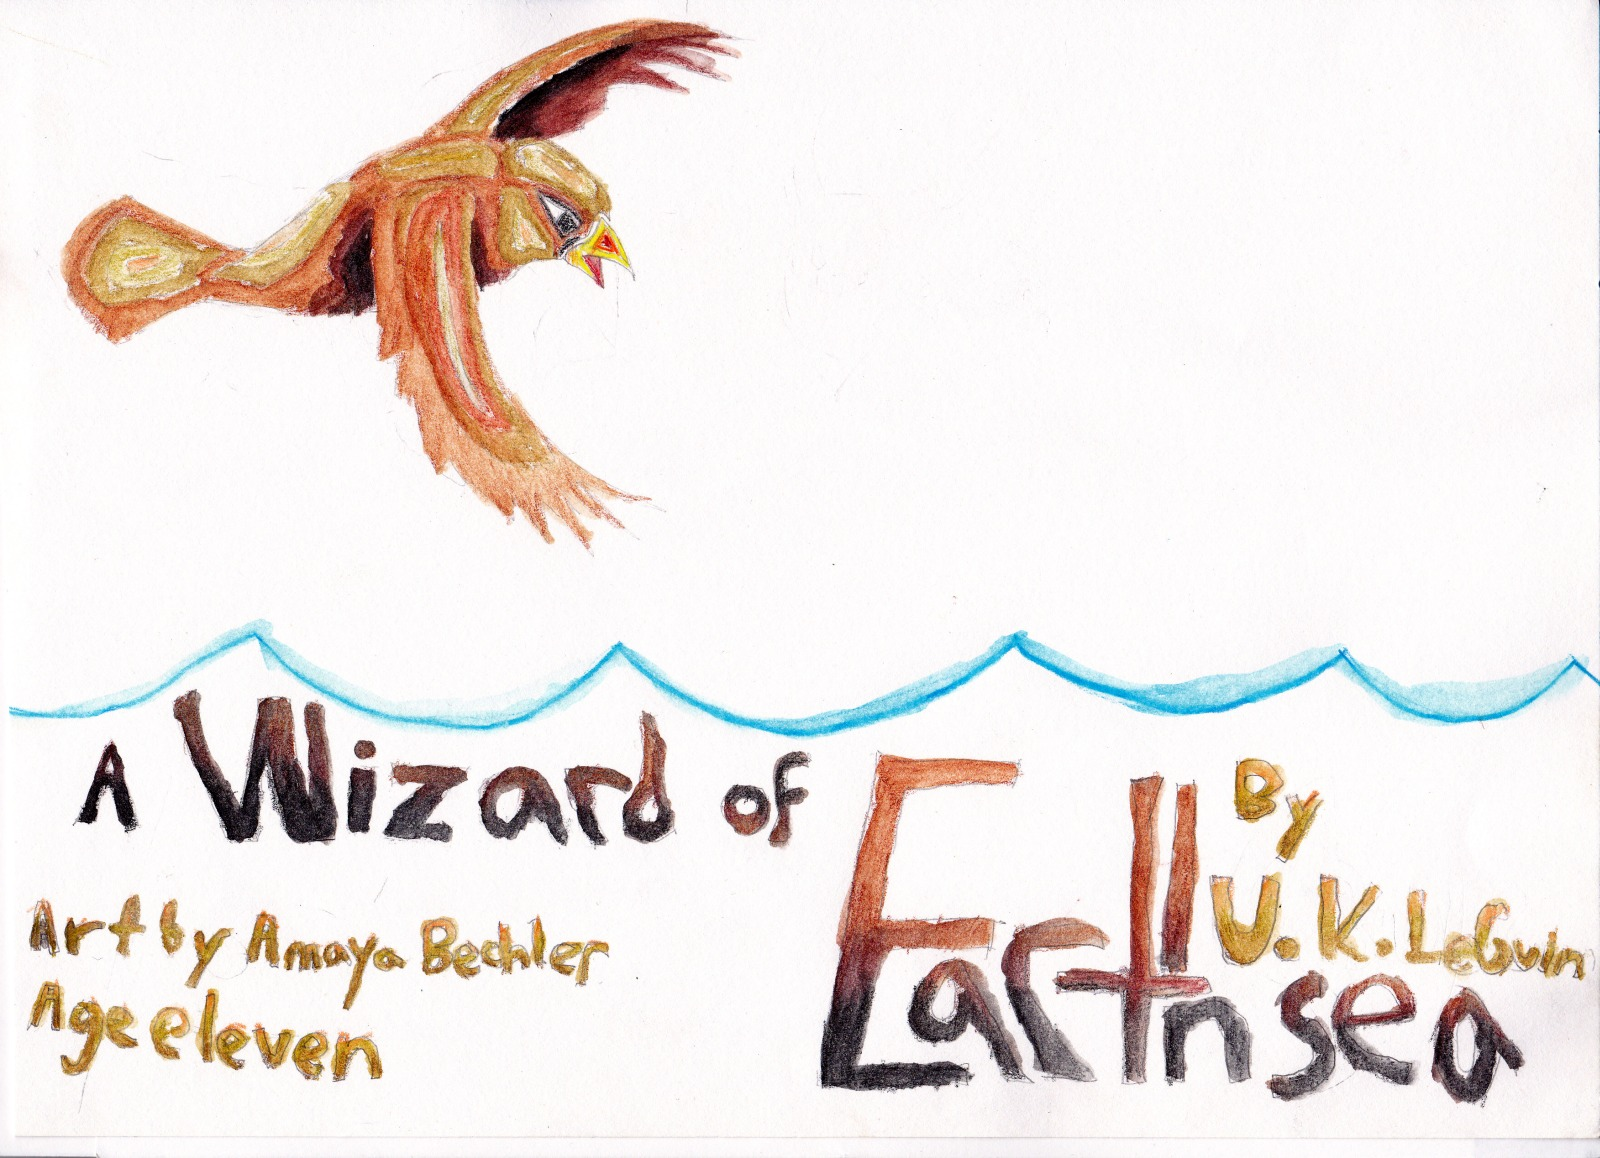 A Wizard of Earthsea, artwork by Amaya Bechler